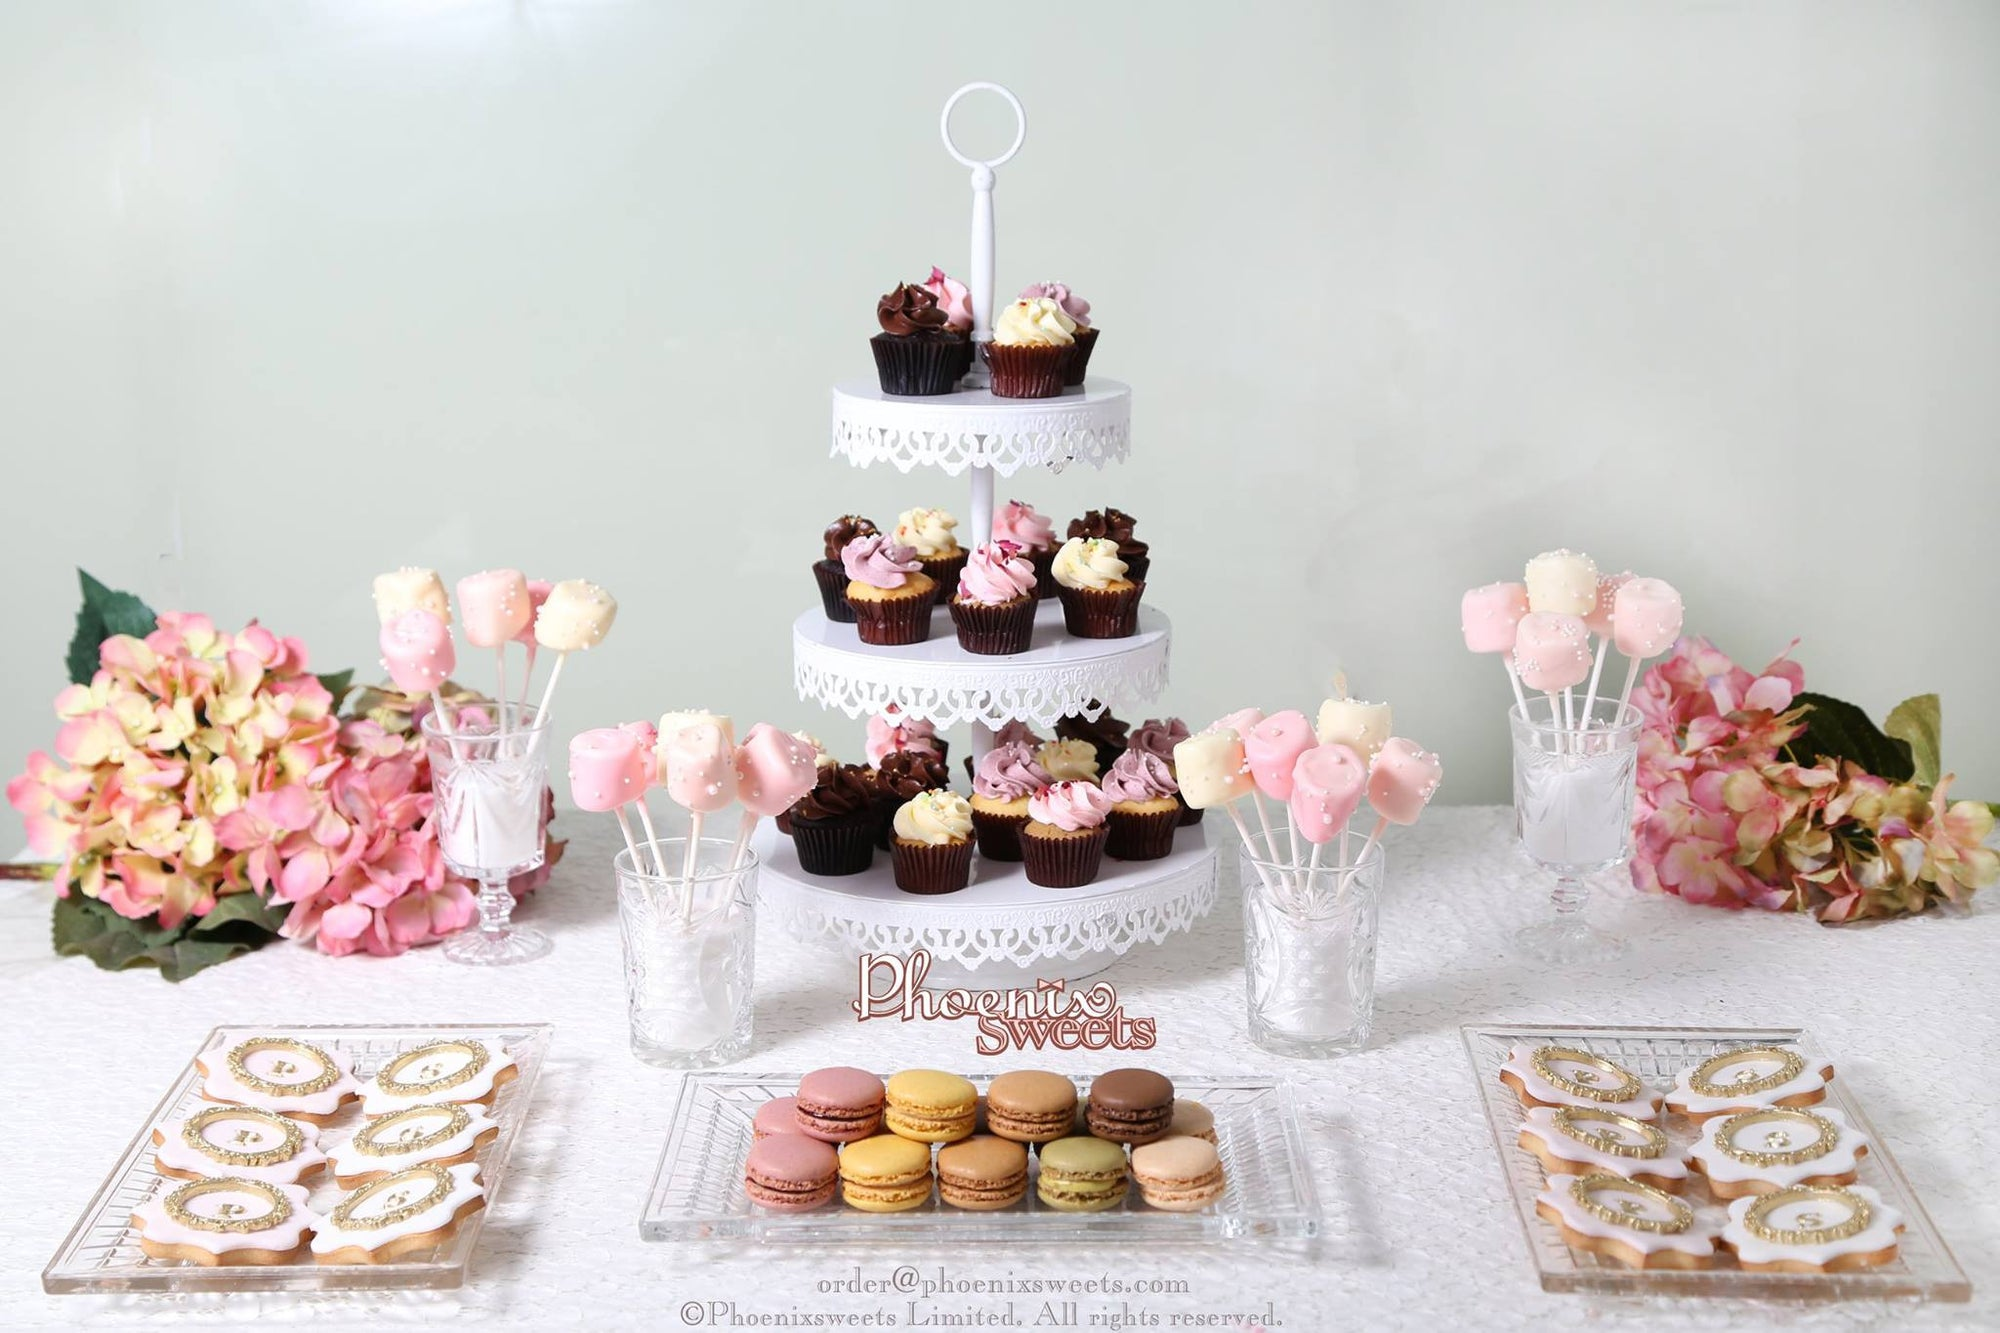 Wedding Items - Party Sweets